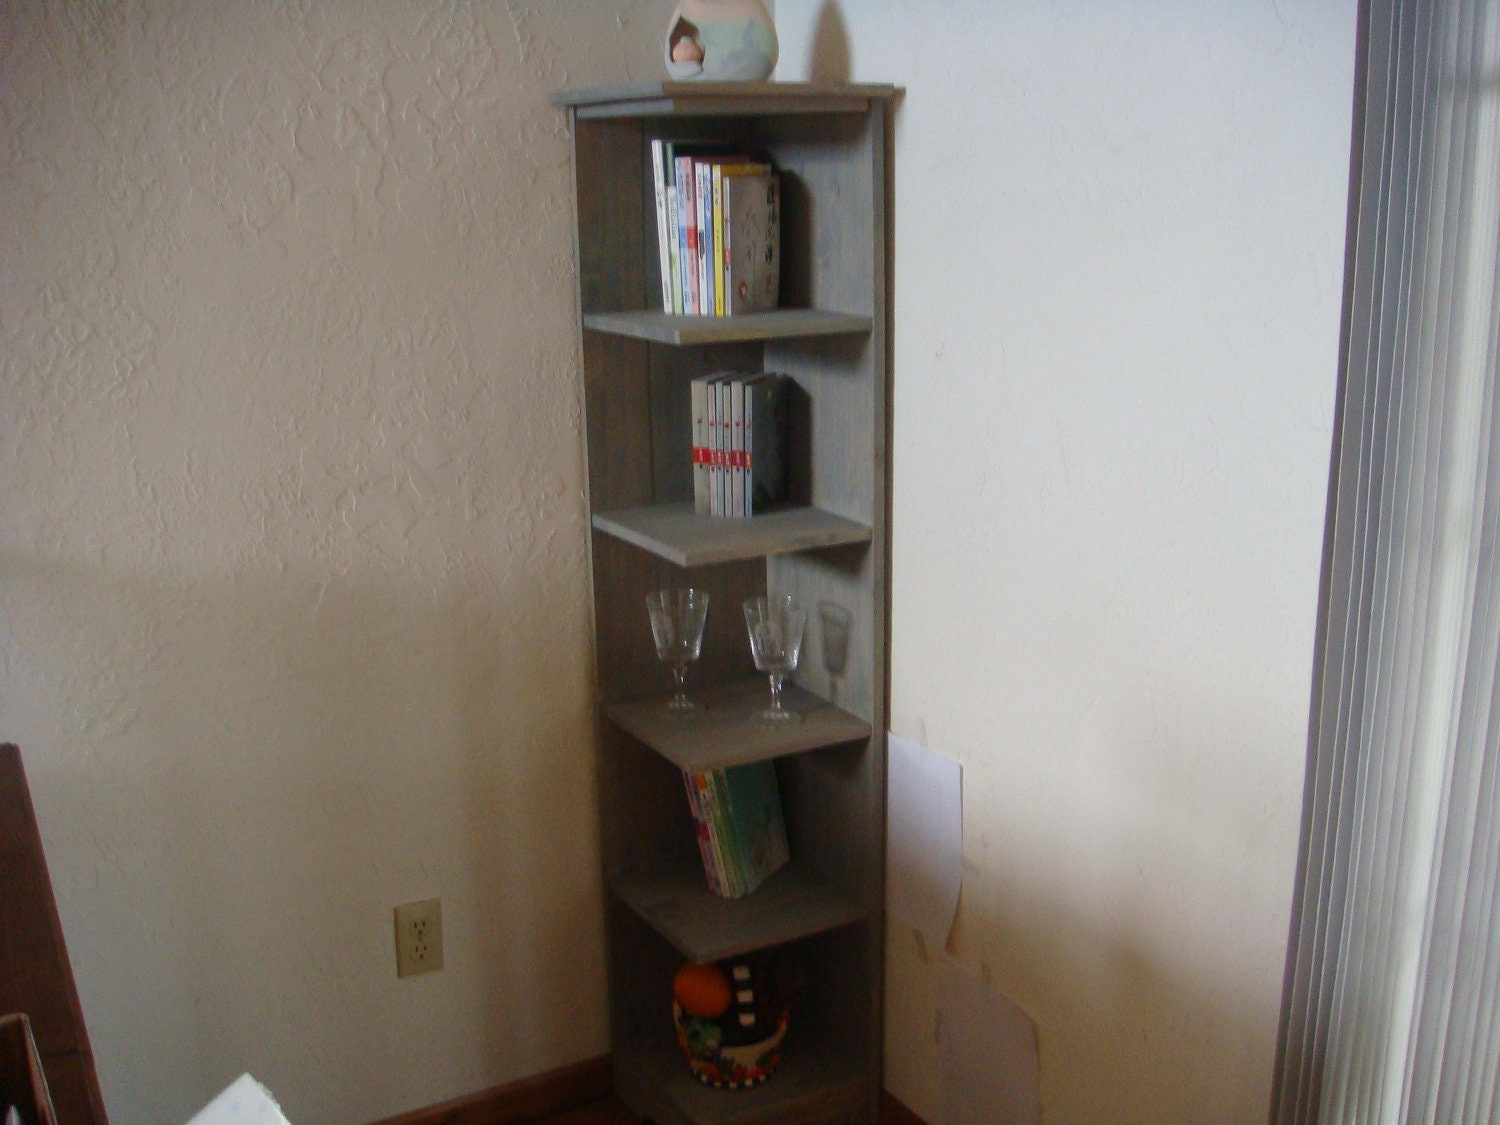 #604938 60 In Tall Corner Shelf Bookcase Display Grey Transparent with 1500x1125 px of Most Effective Tall Corner Bookcase 11251500 wallpaper @ avoidforclosure.info